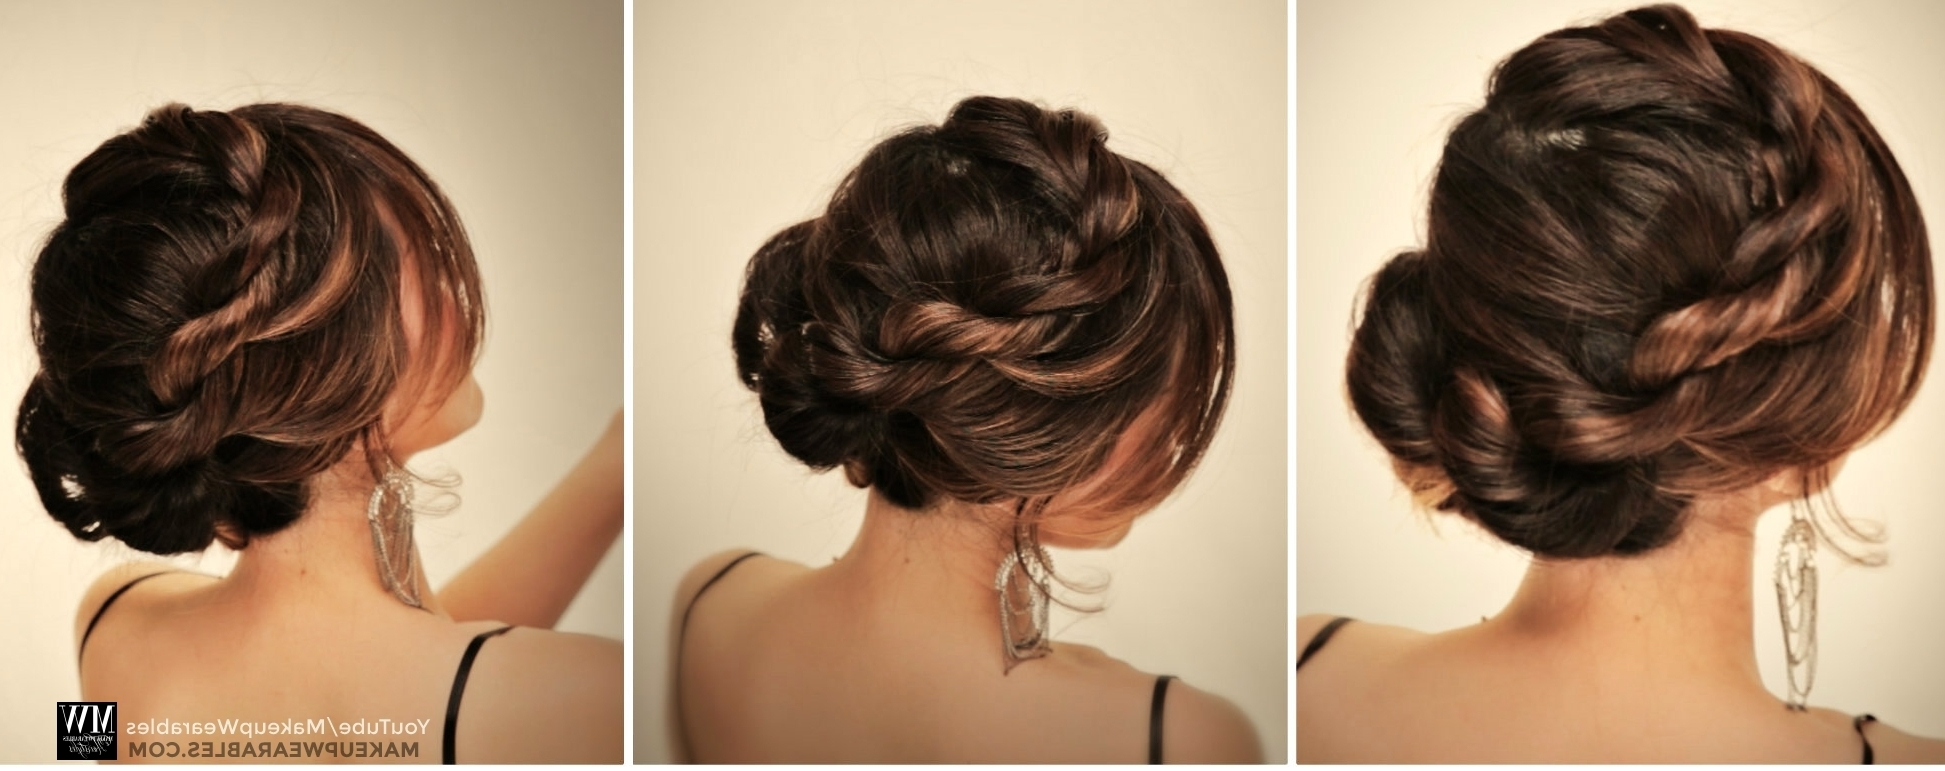 How To: 5 Amazingly Cute + Easy Hairstyles With A Simple Twist Inside Easy Hair Updos For Long Hair (View 5 of 15)